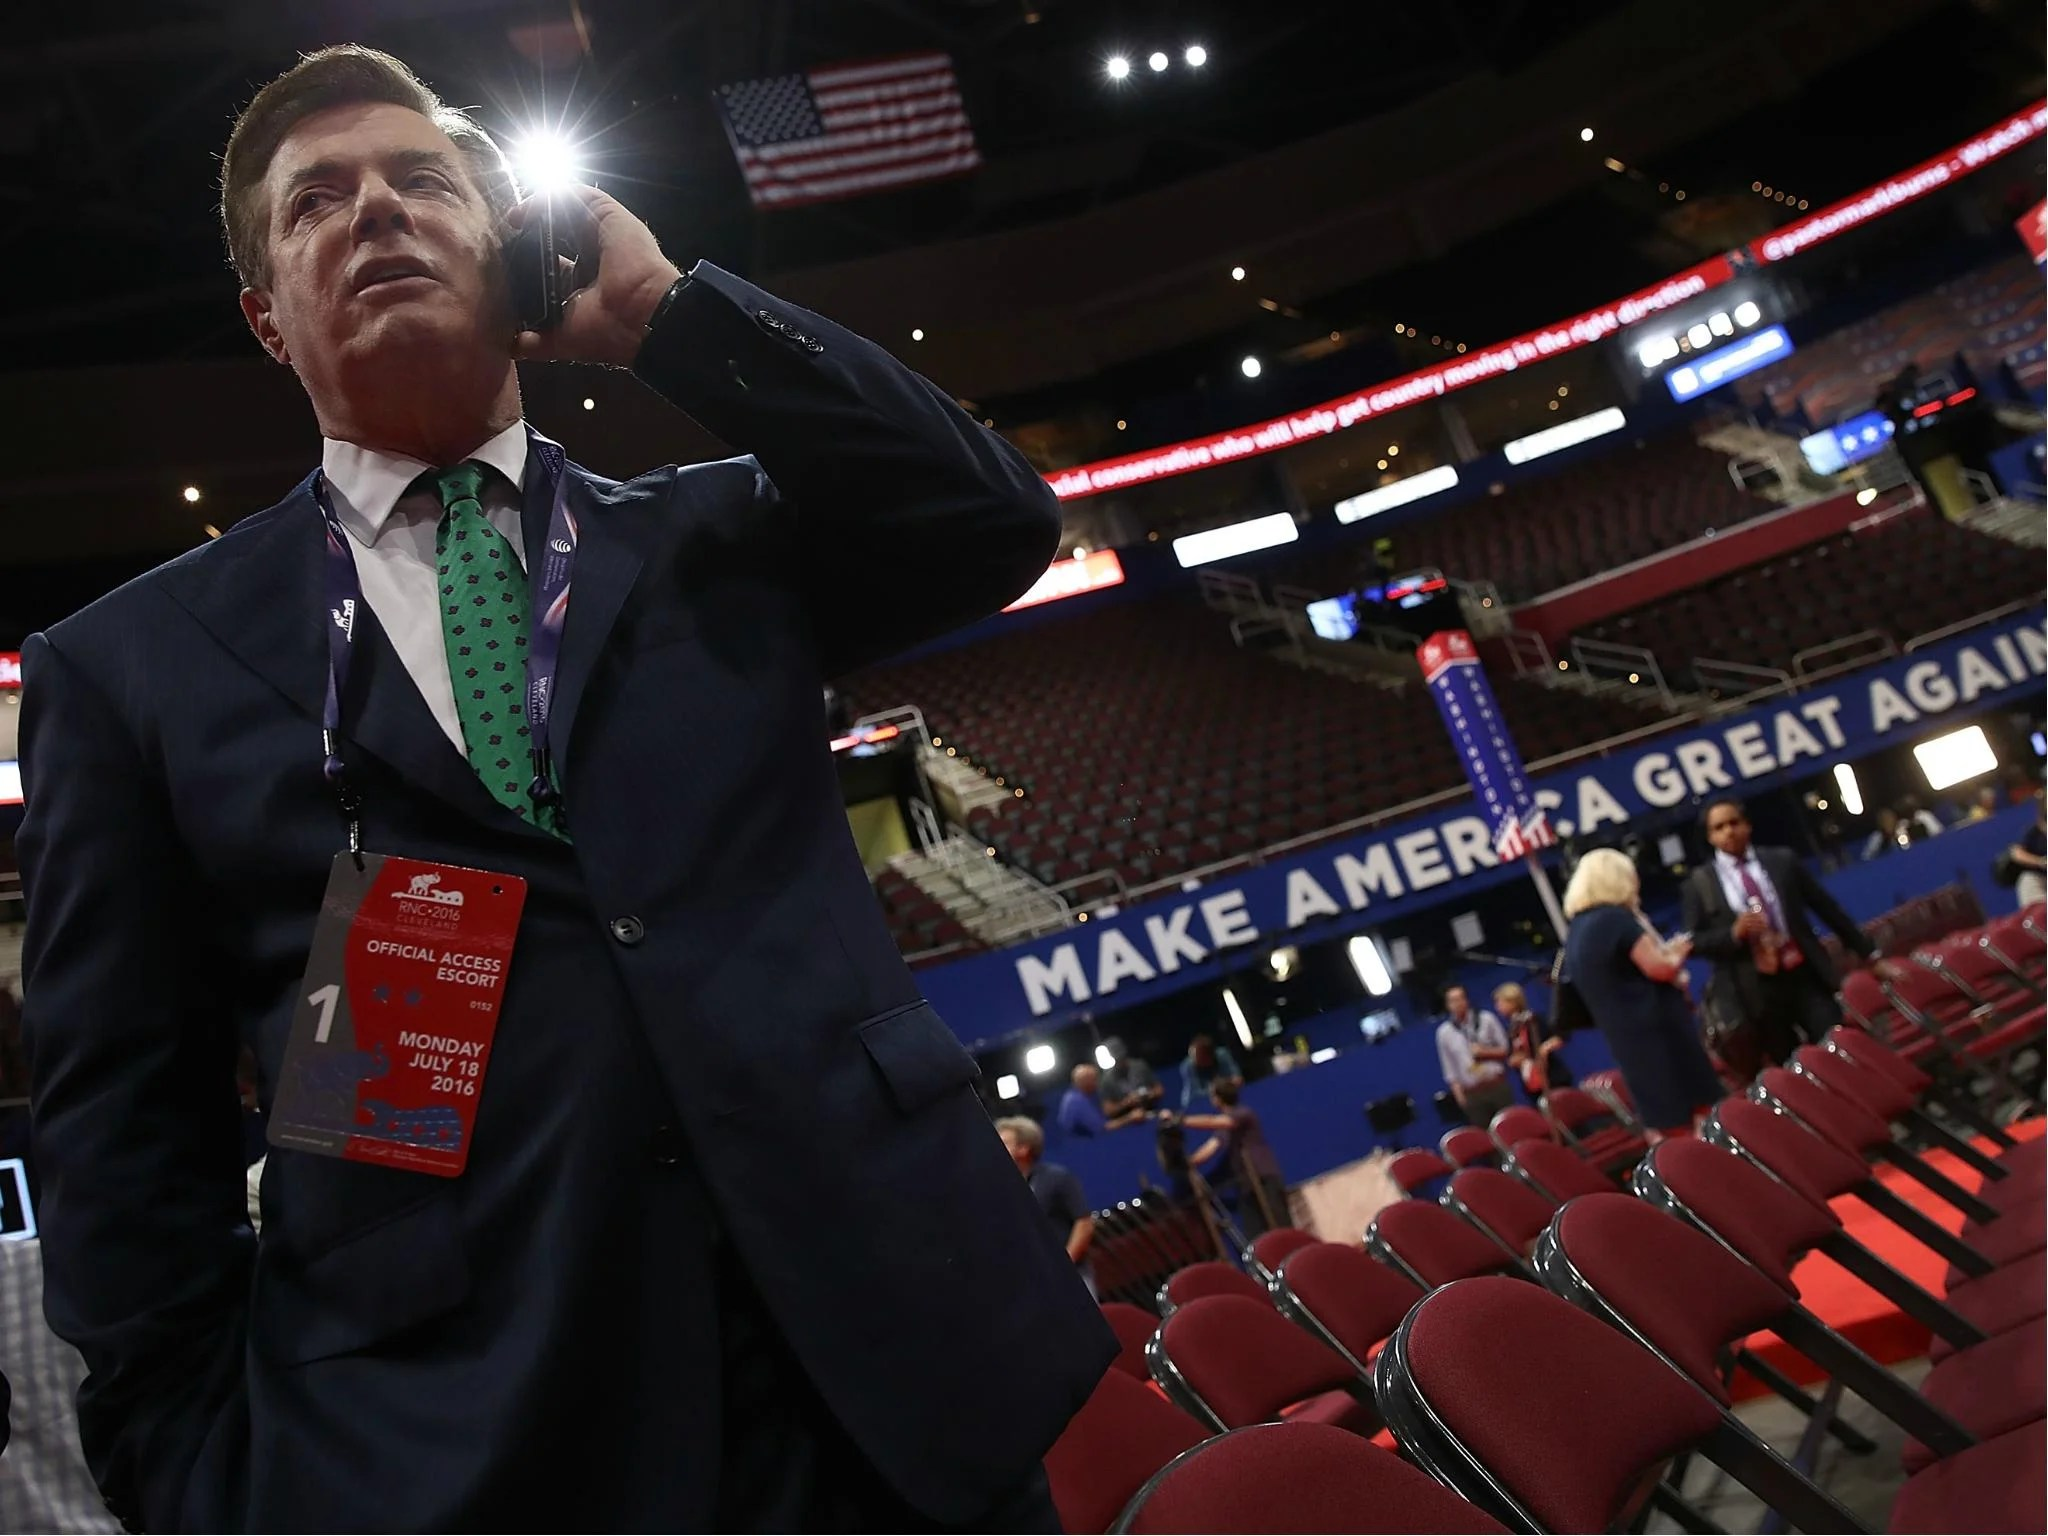 Paul Manafort, former campaign manager for President Donald Trump, speaks on the phone while touring the floor of the Republican National Convention 17 July 2016 in Cleveland, Ohio.